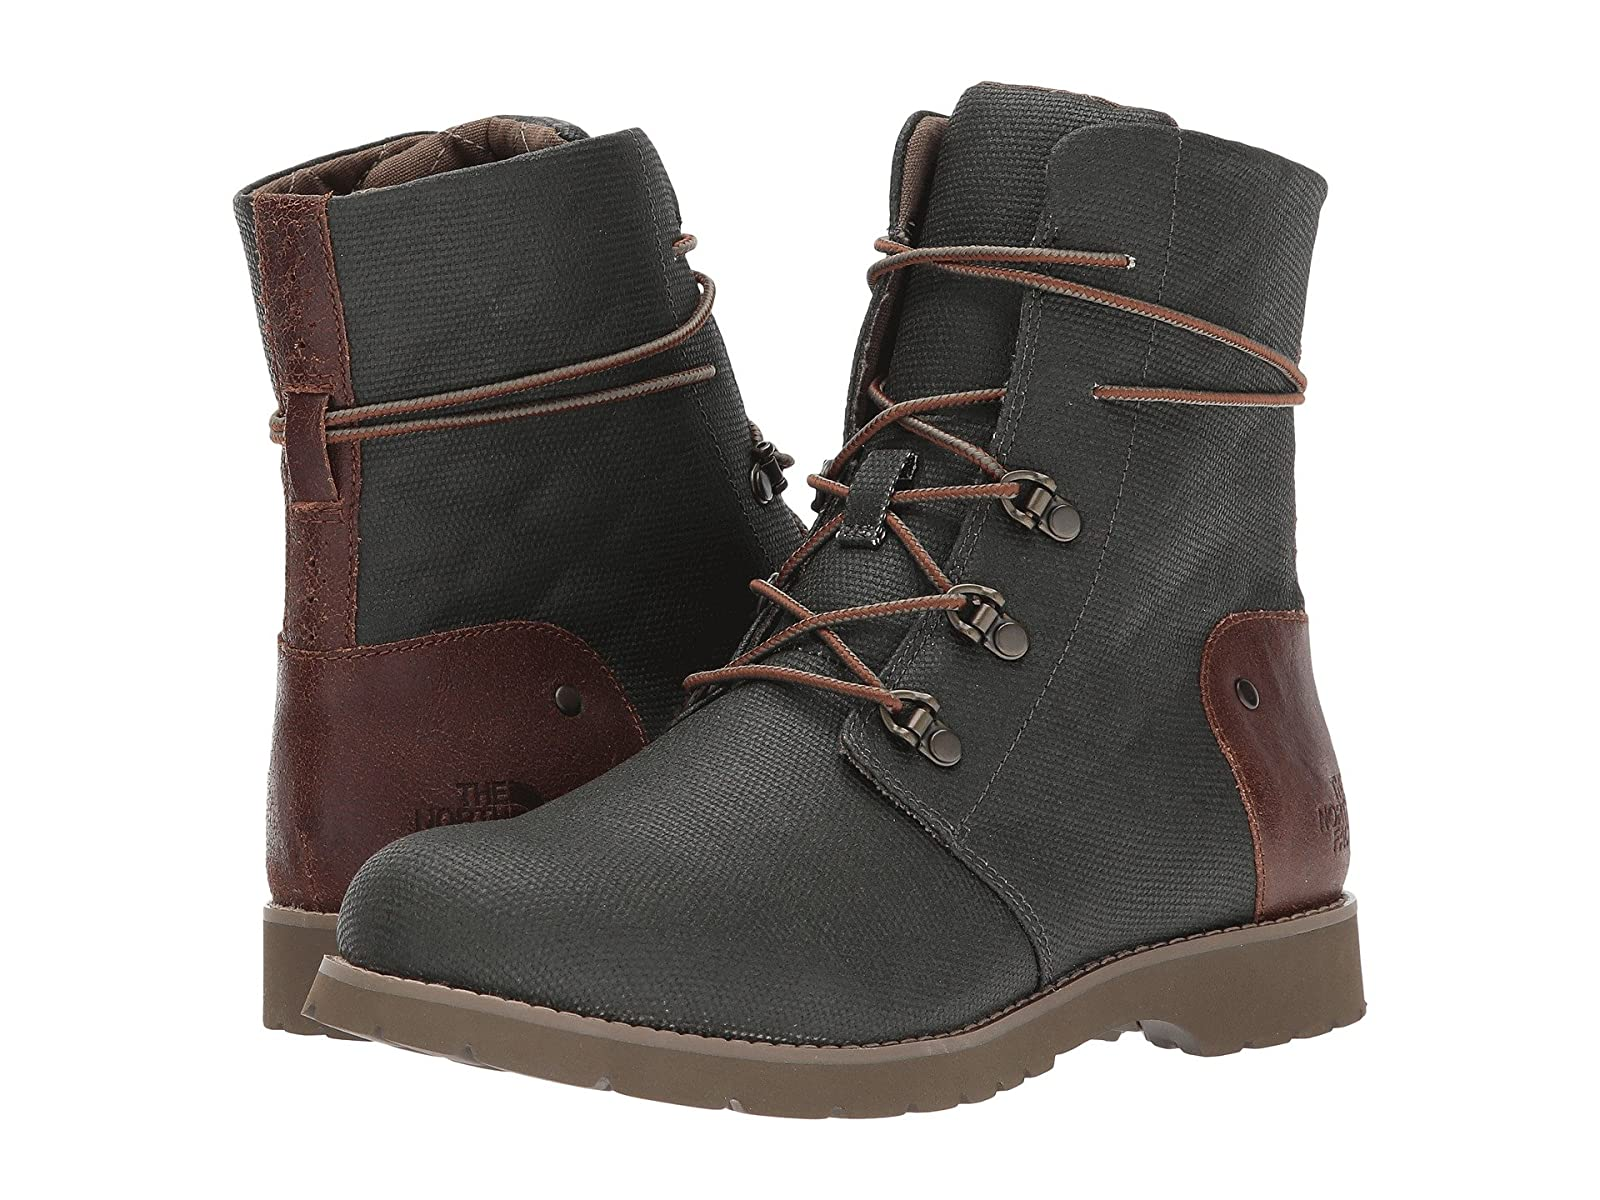 The North Face Ballard Lace II Coated CanvasEconomical and quality shoes